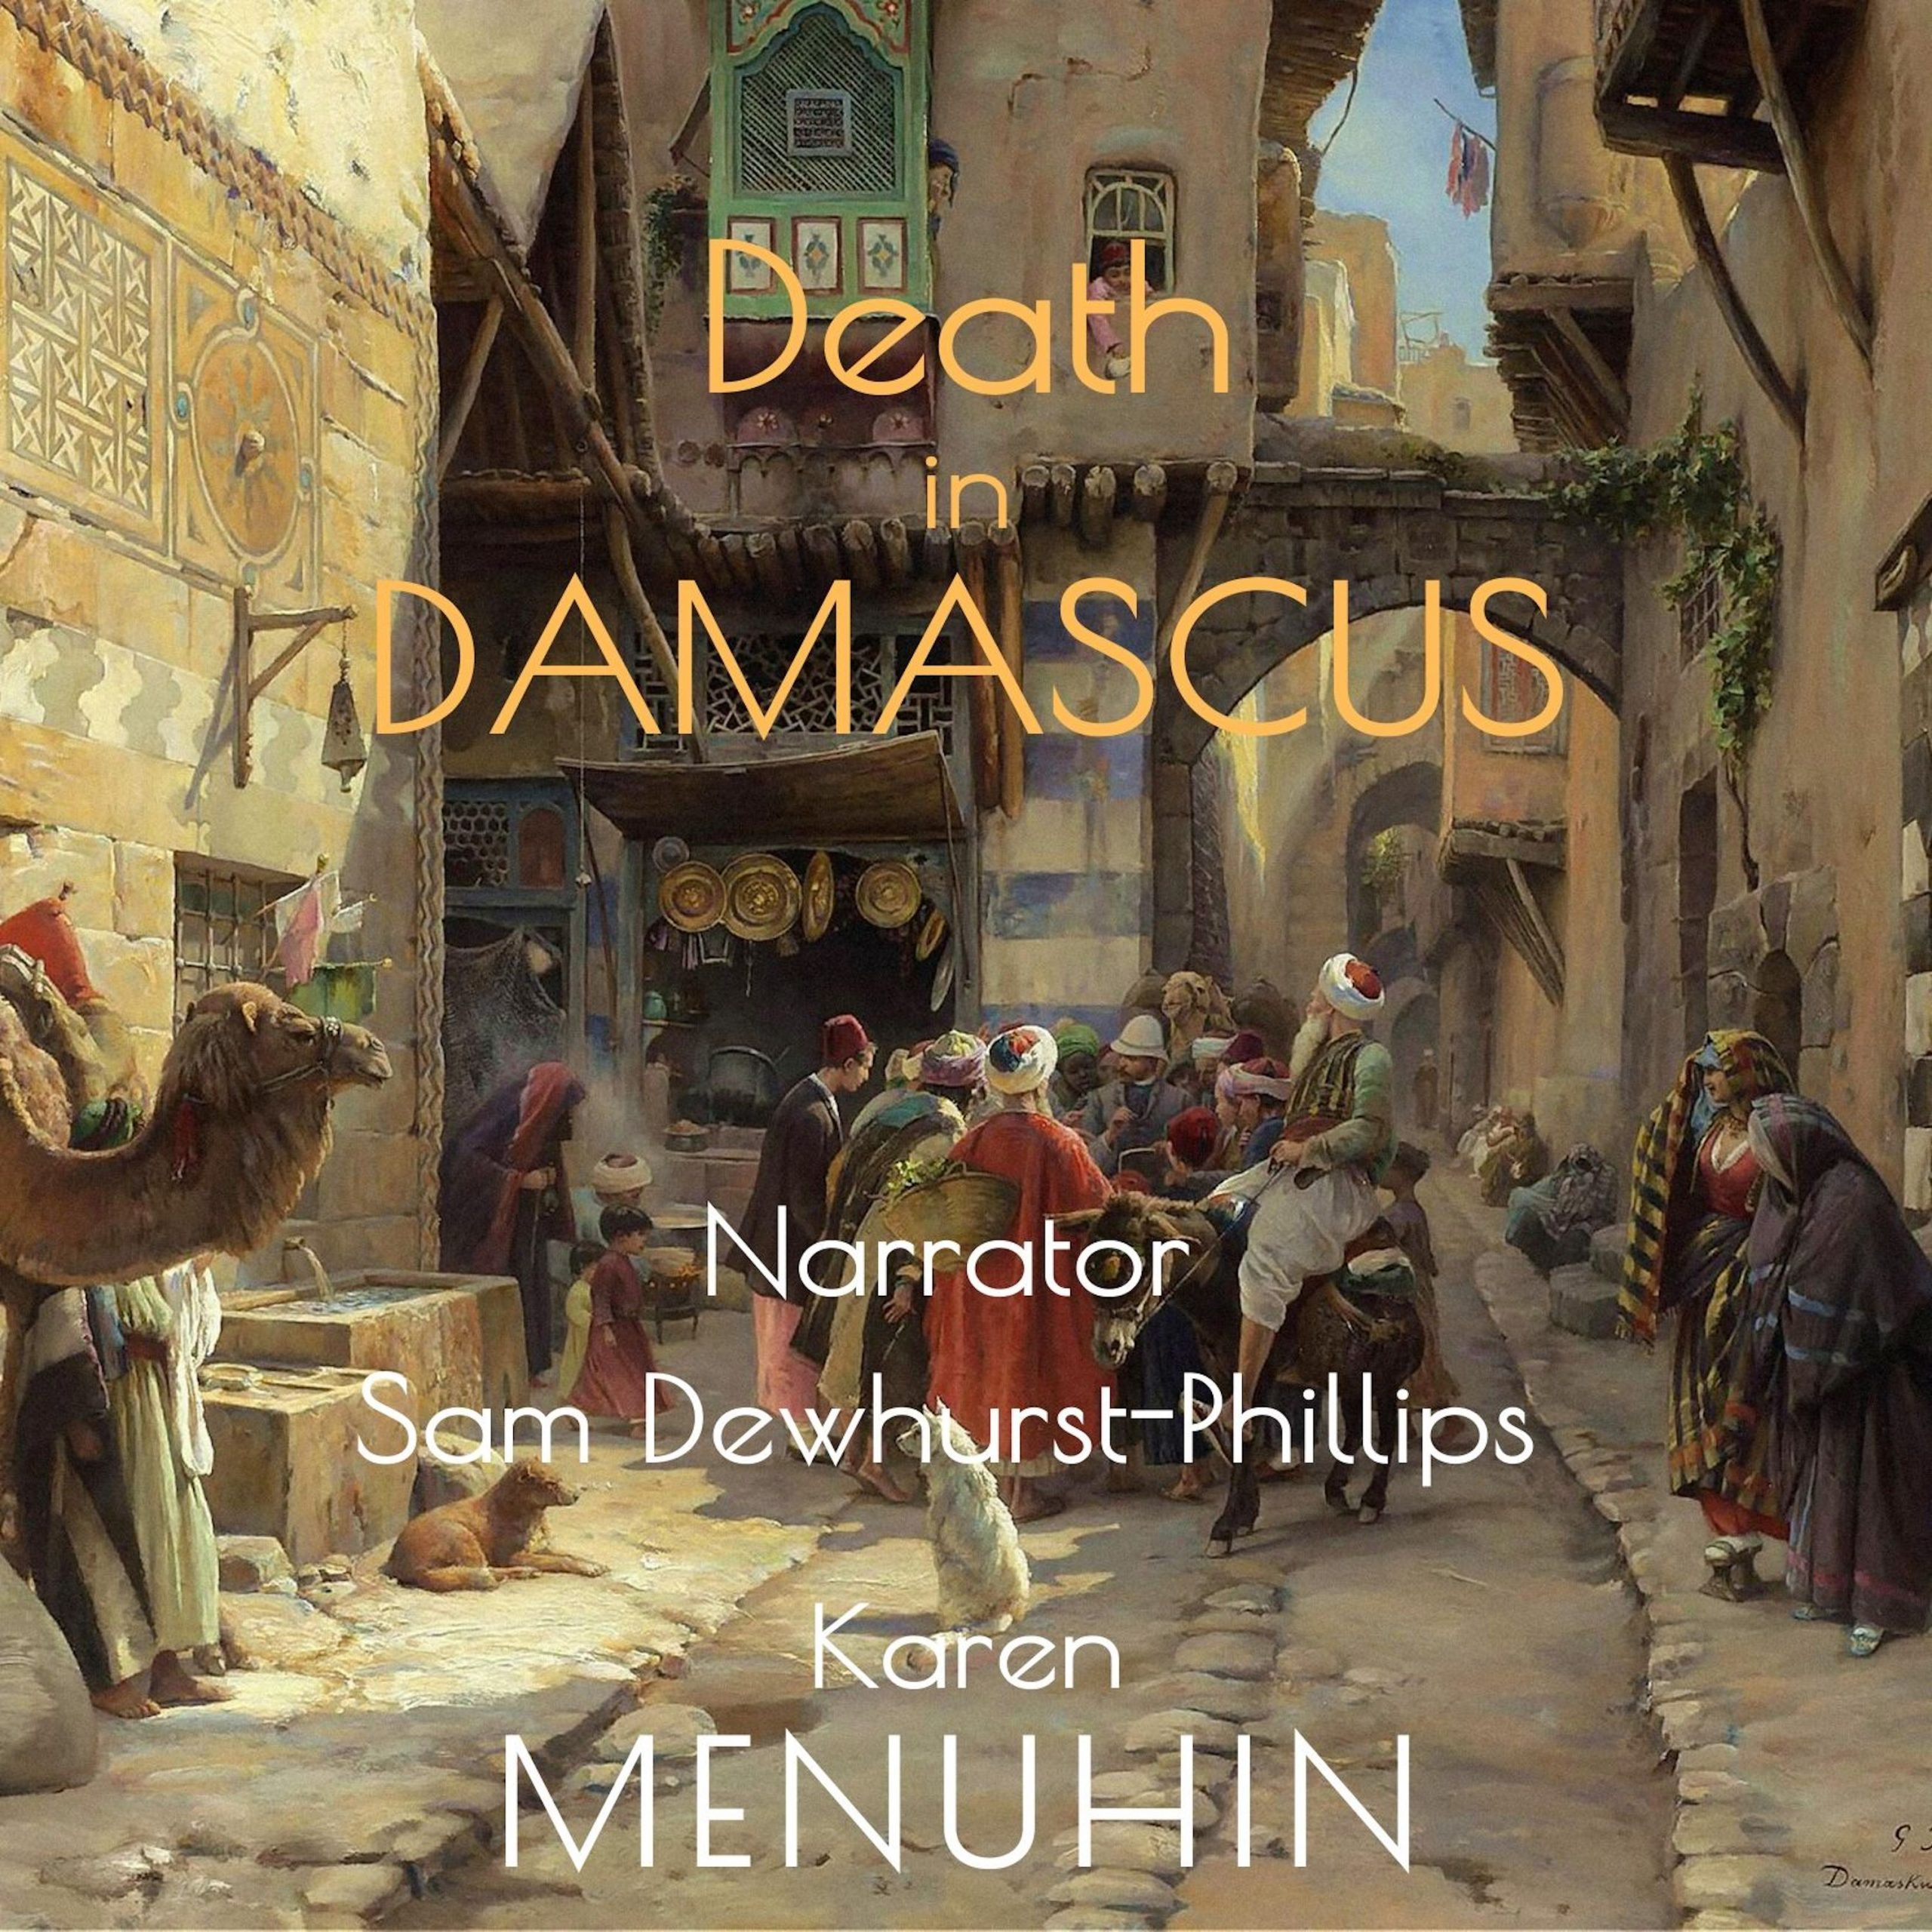 Death in Damascus Audiobook Cover